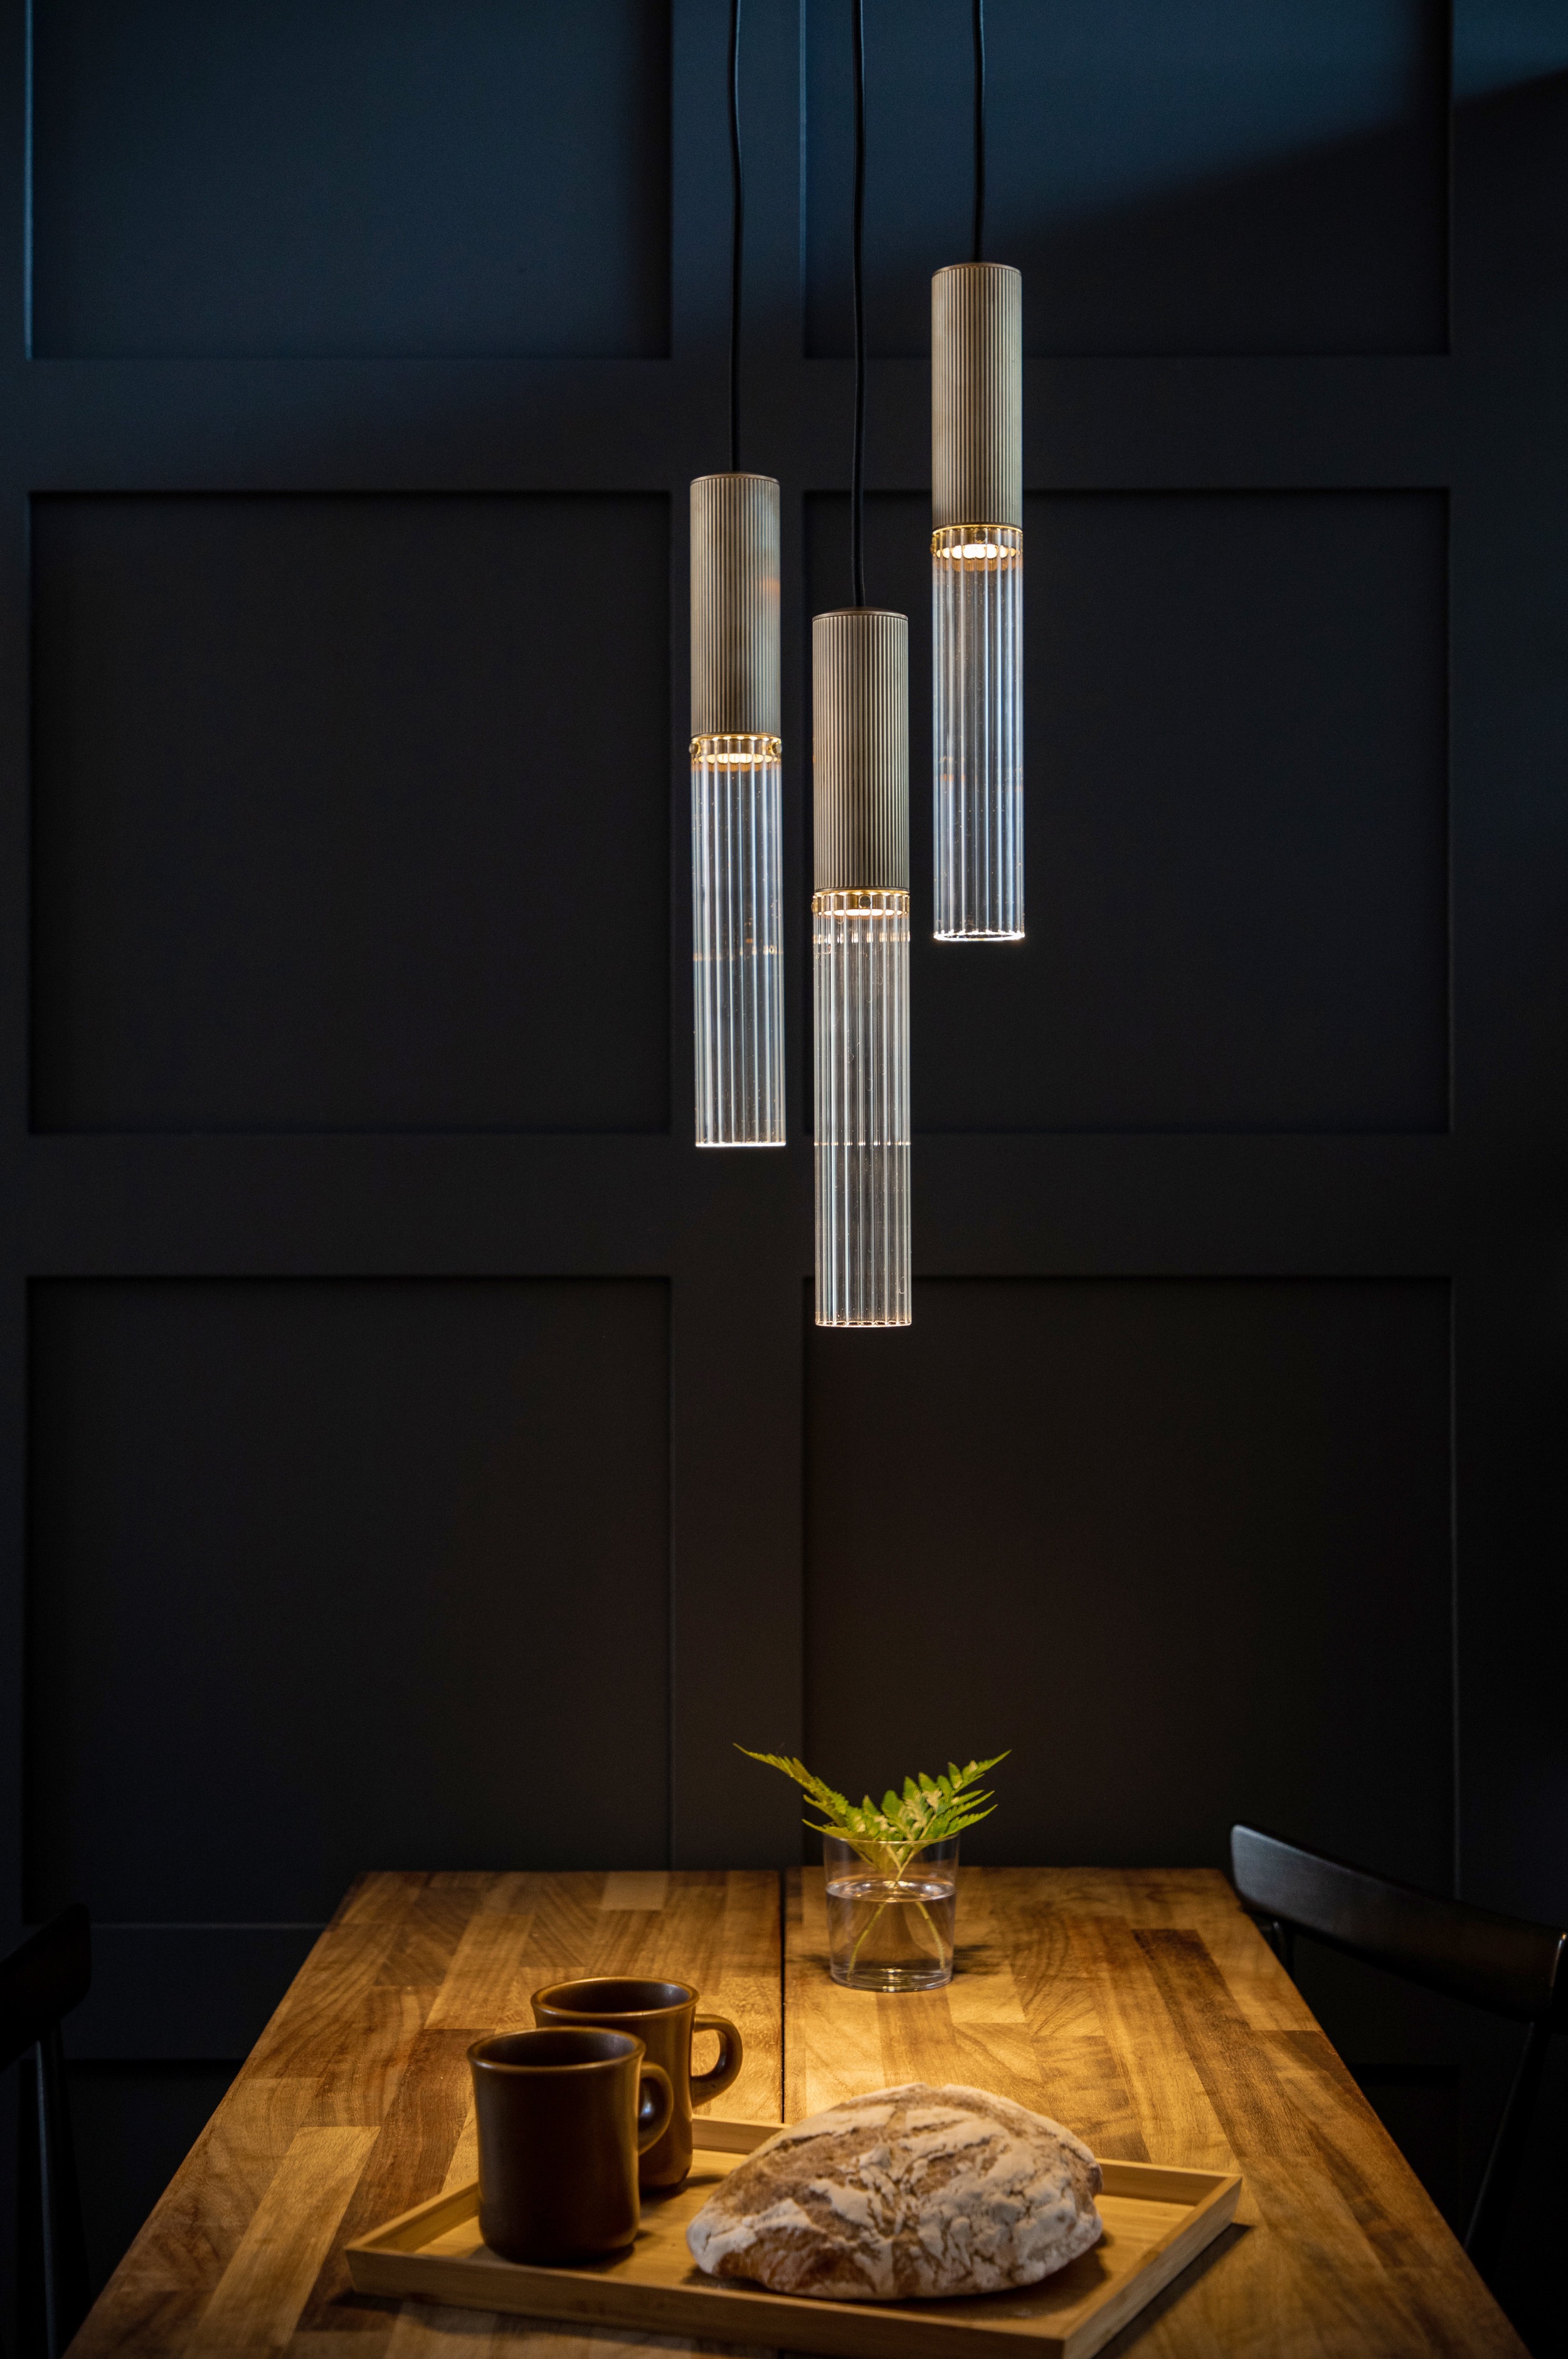 Flume 50 Pendant - Whether used singly or in groups, the flume 50 casts the perfect light downwards to create an intimate atmosphere. Available in antique brass or bronze finishesØ50mm x 375mm (h)